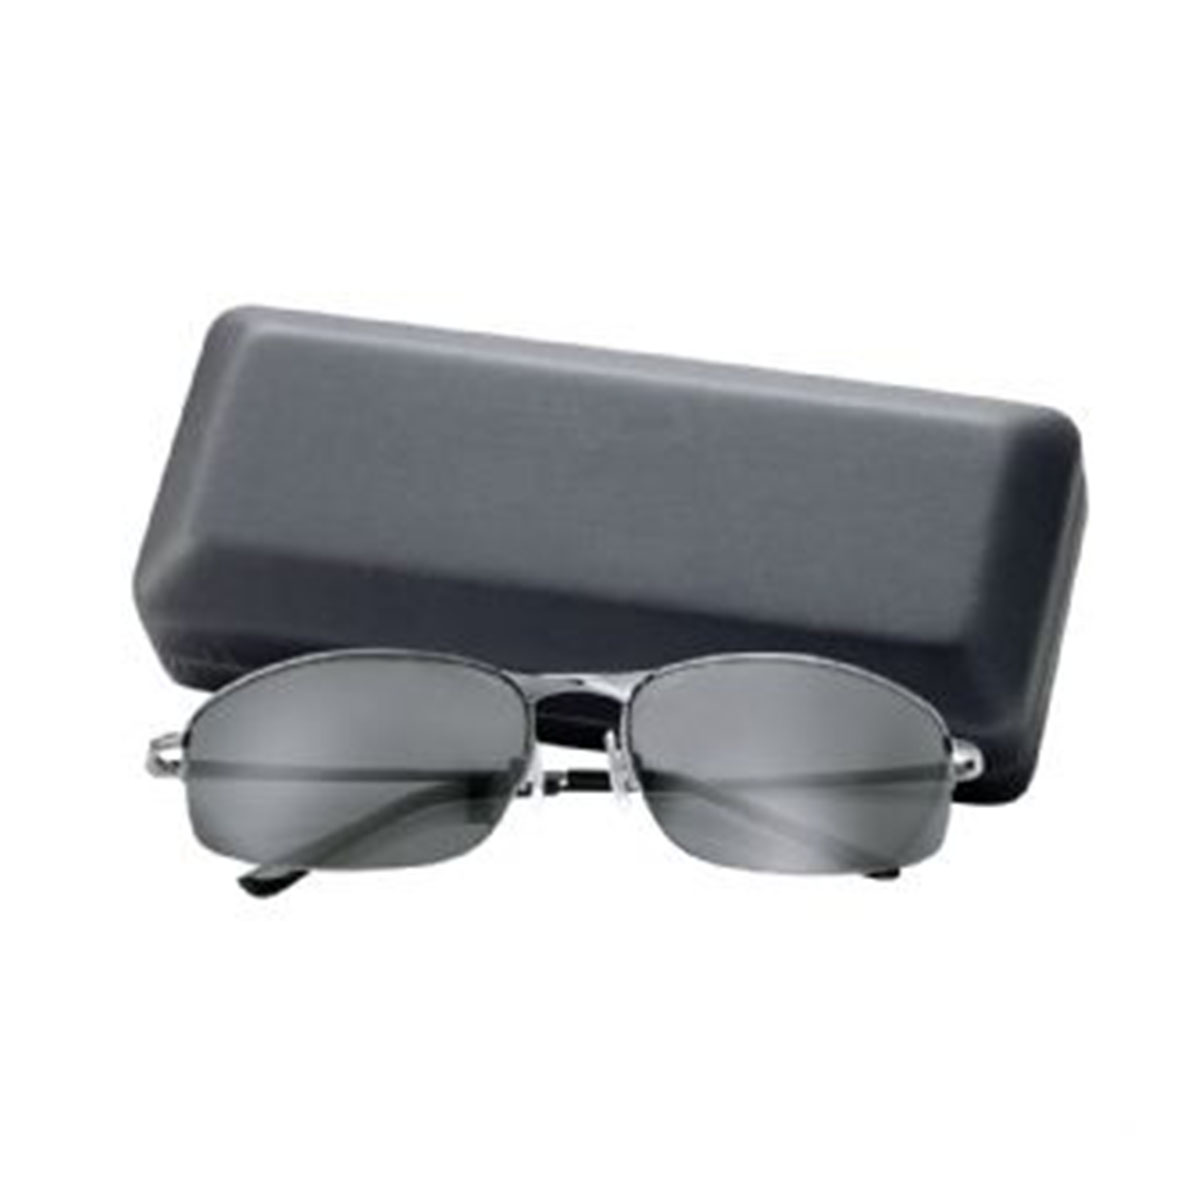 Edge Sunglasses-Black Case.